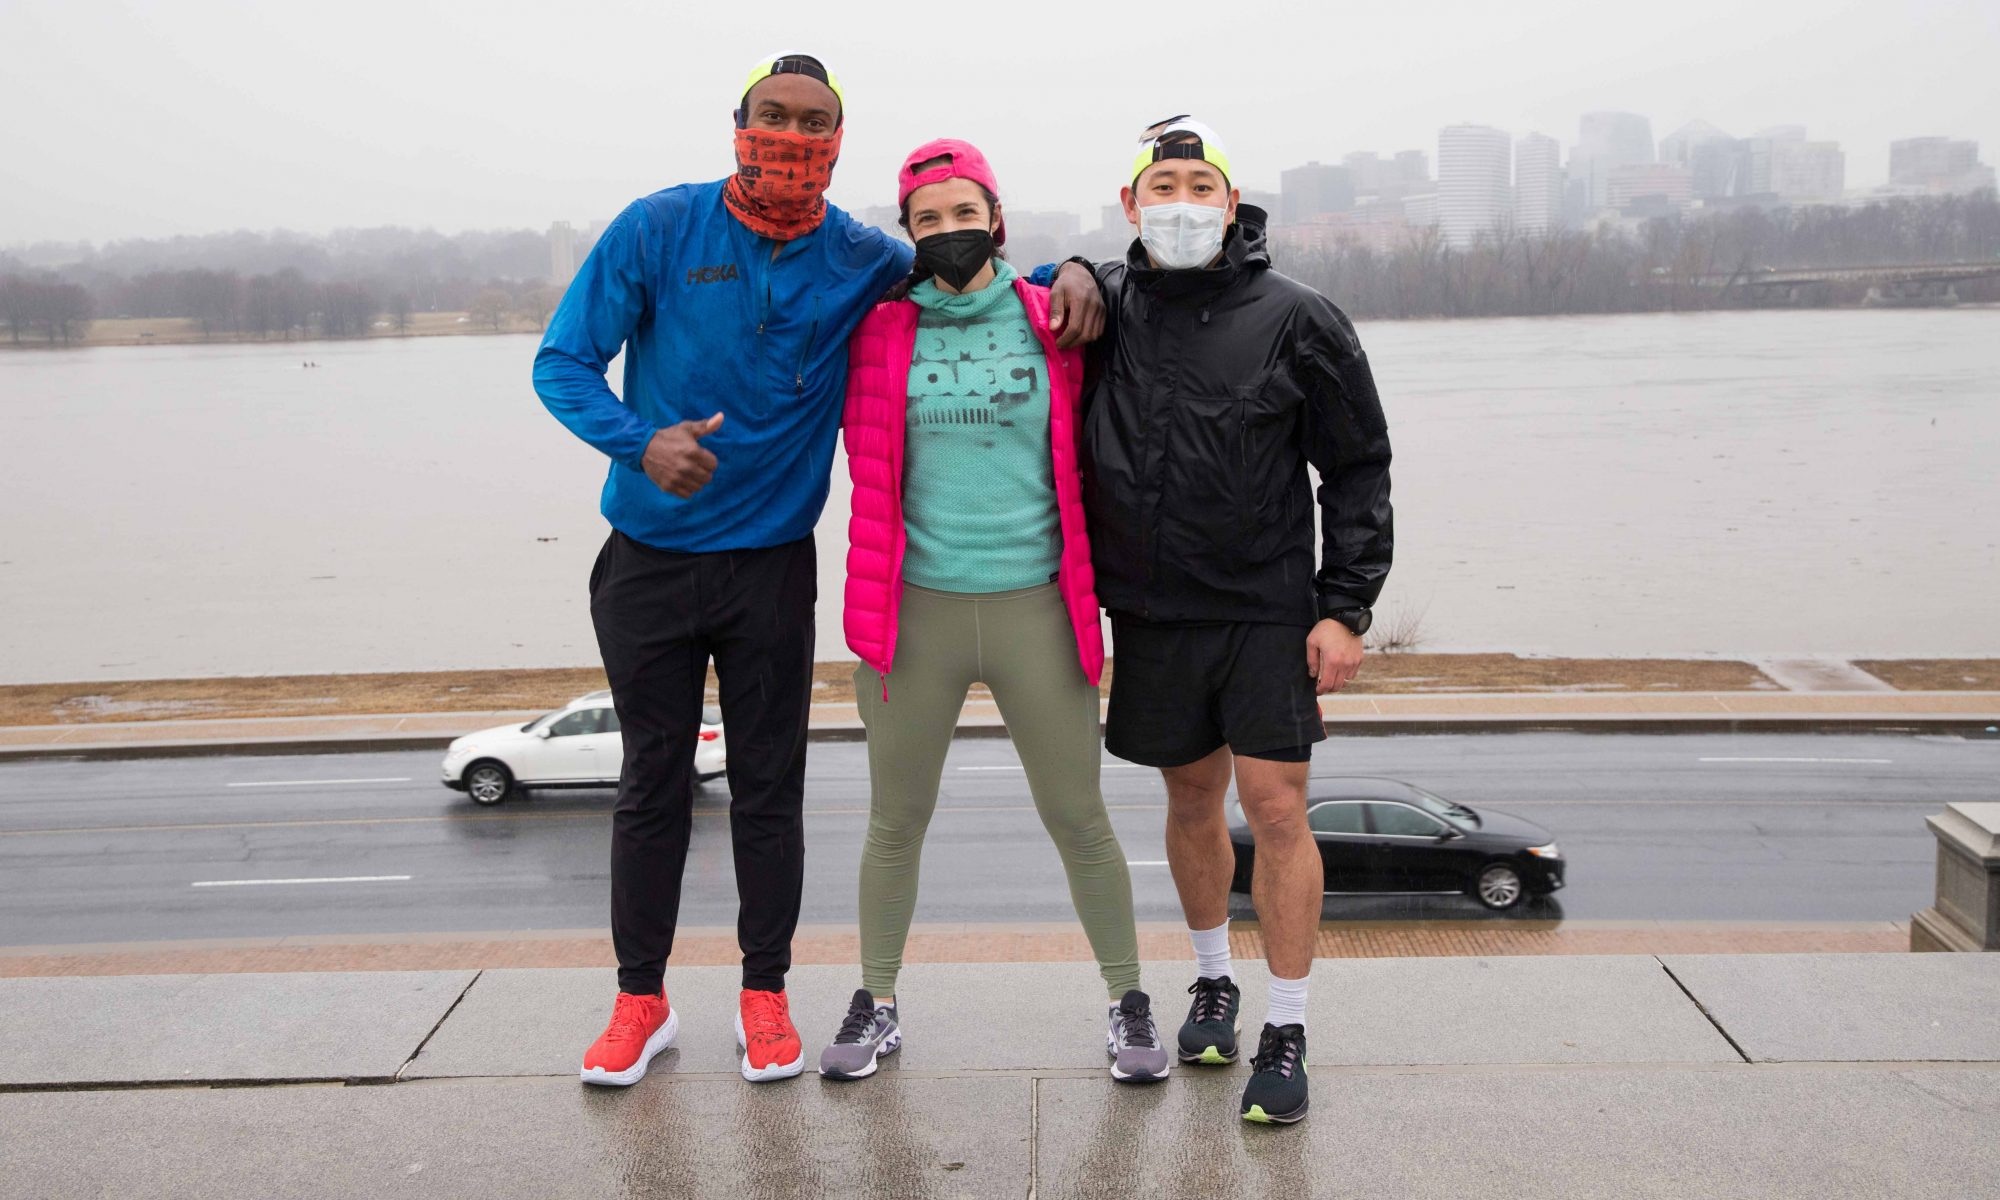 An image of Chris Jolly, Katherine Foley, and Young Joo standing in front of the stairs behind the Lincoln on a grey day. Everyone is wearing masks.